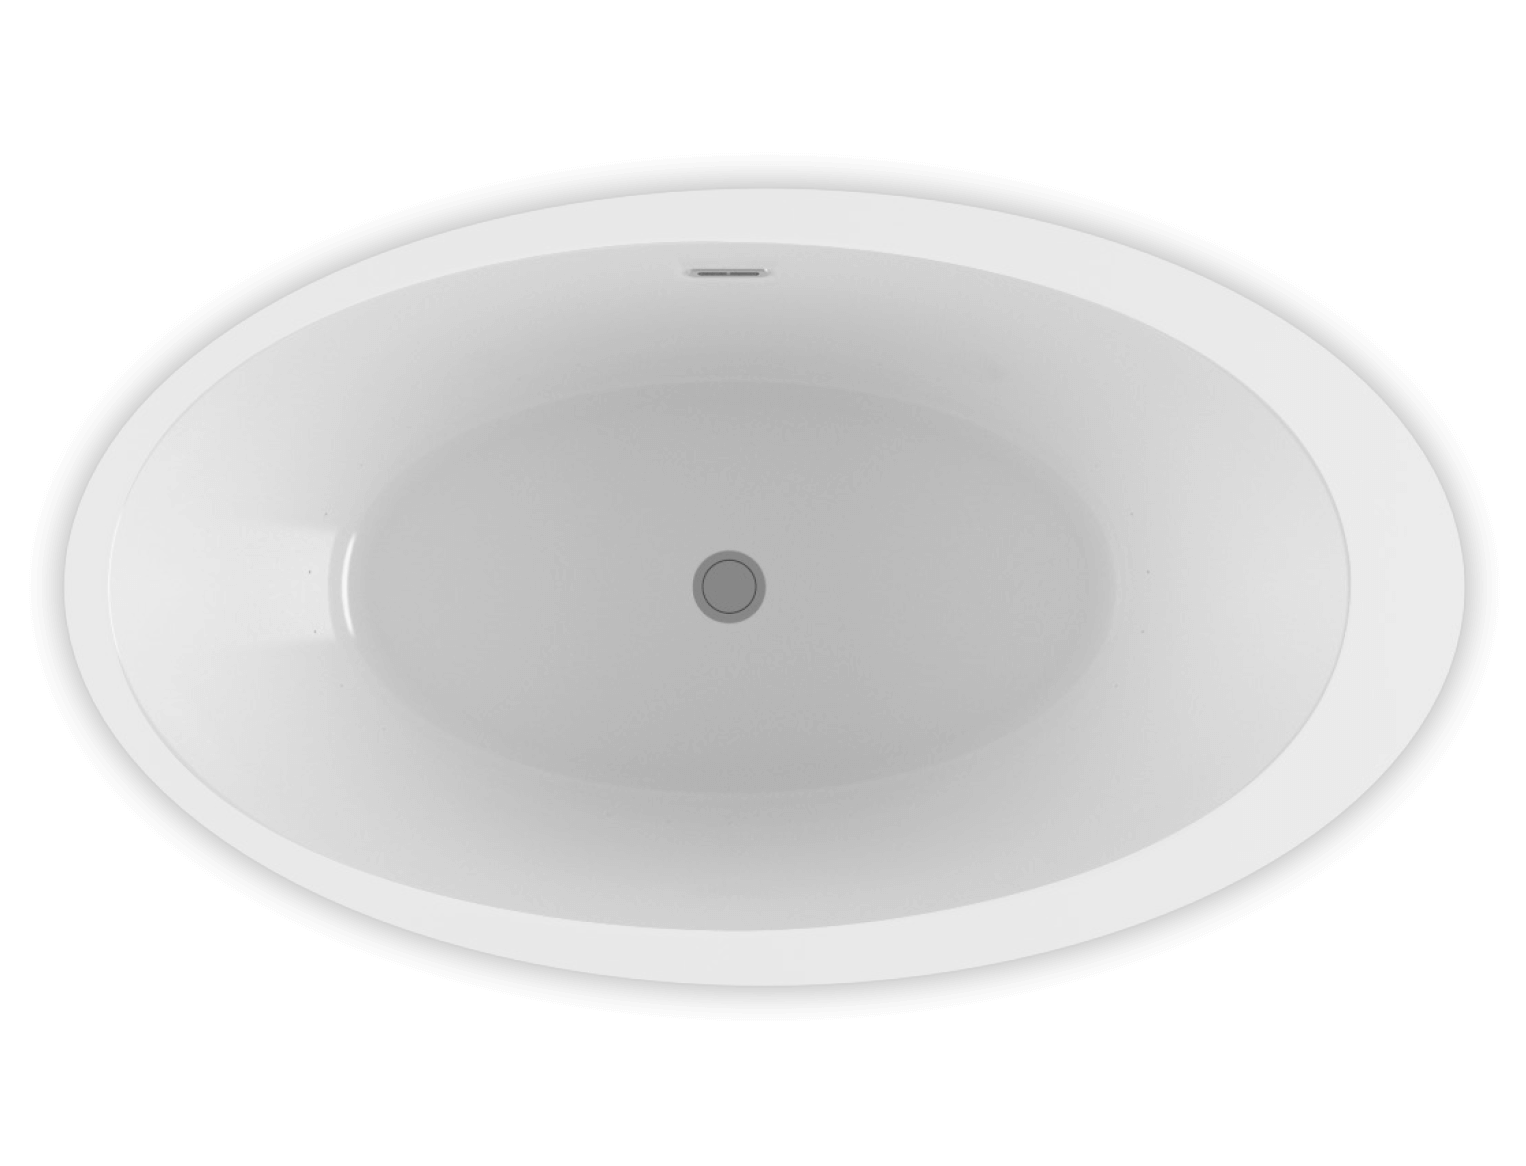 Opalia 6839 Off Centered Ellipse Left air jet bathtub for your modern bathroom